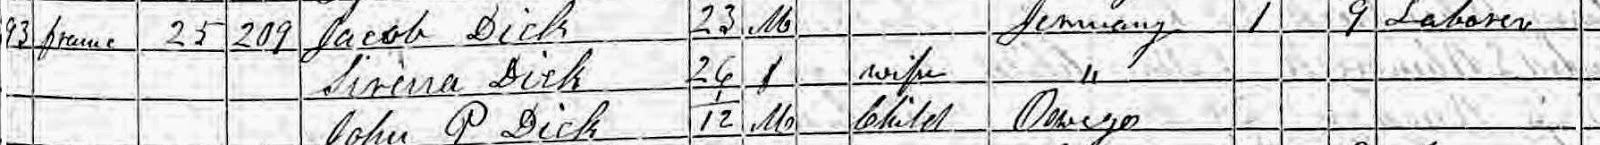 Climbing My Family Tree: Dick 1855 NY Census